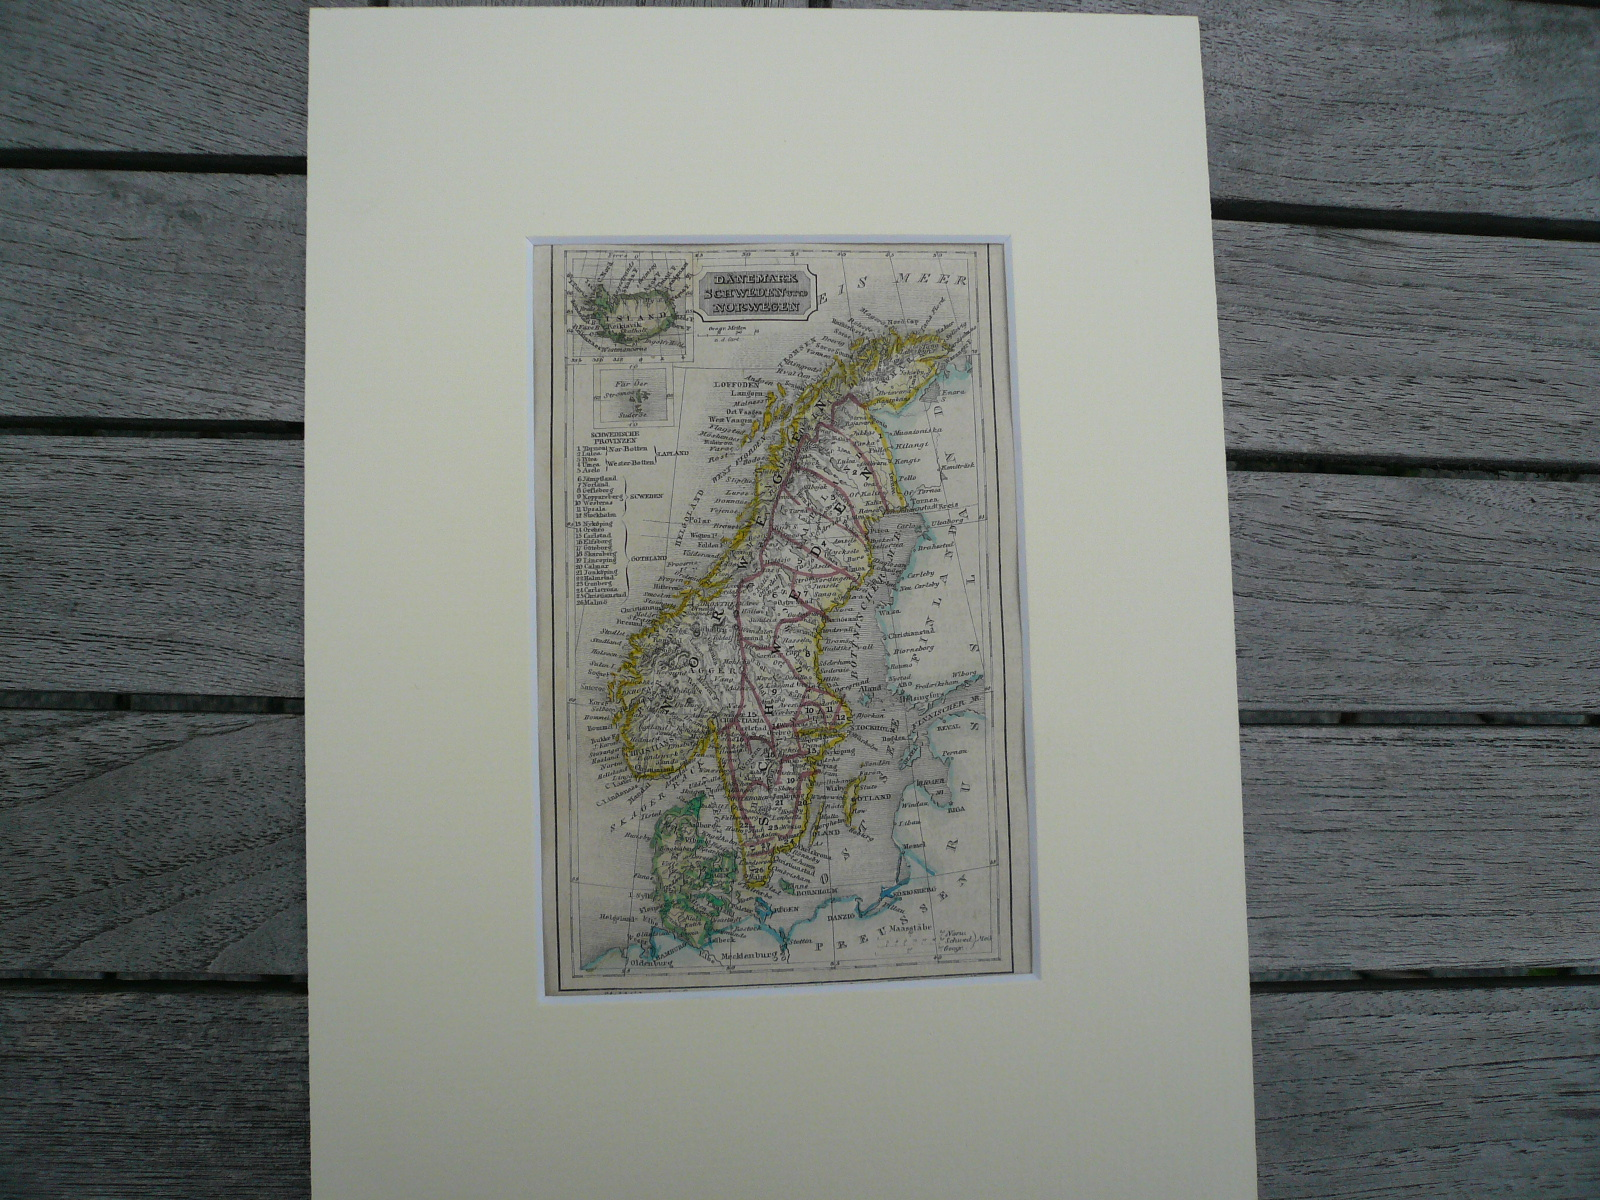 Norway,Sweden,anno 1850, steelengraving